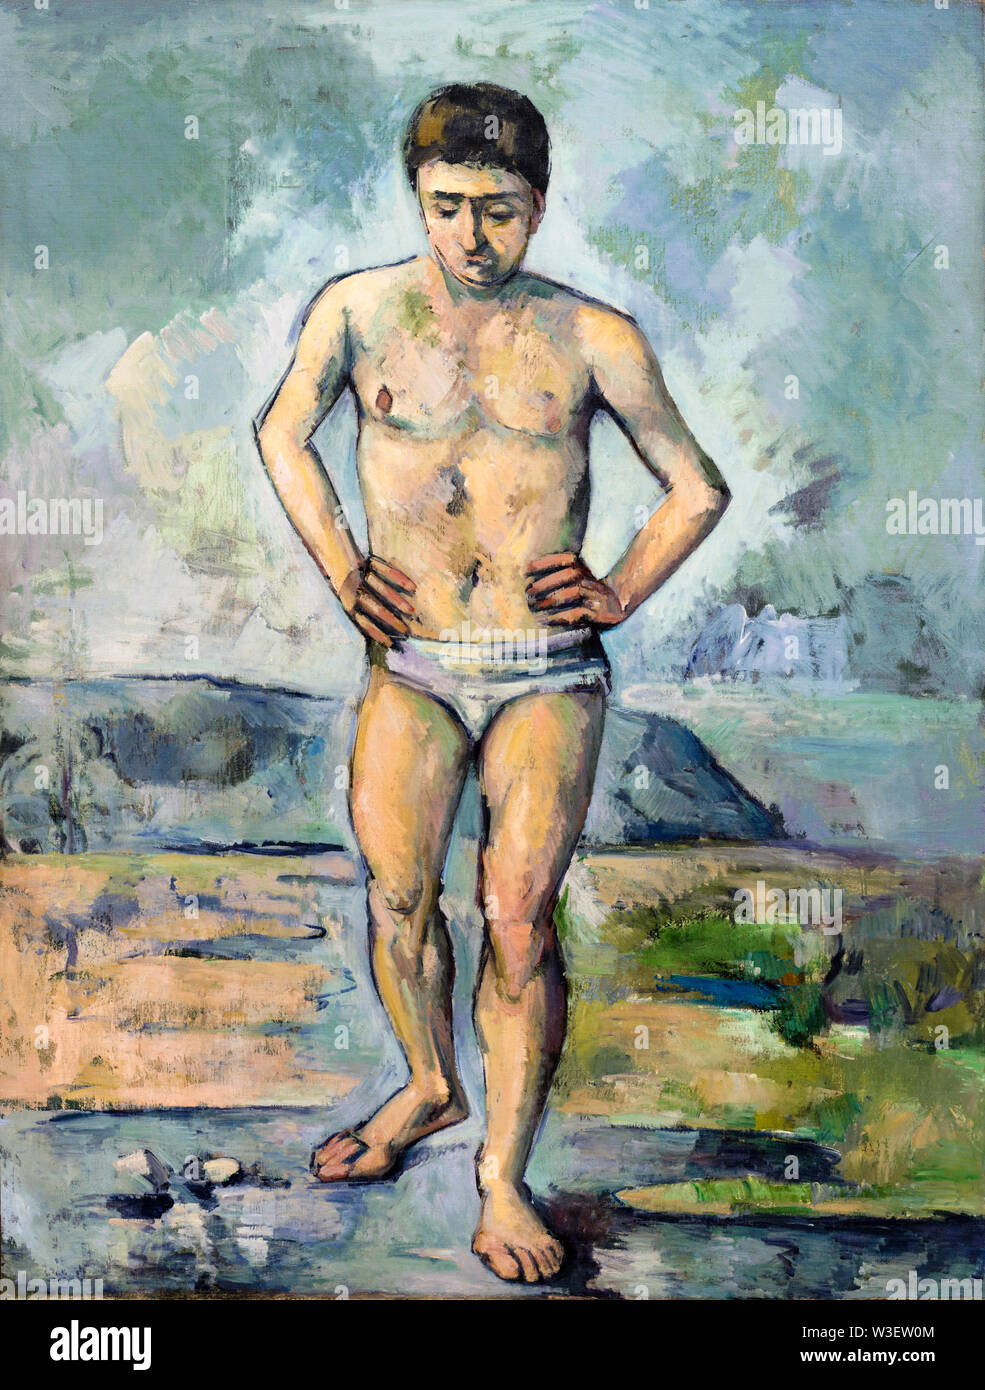 Paul Cézanne, The Bather, painting, 1885 - Stock Image